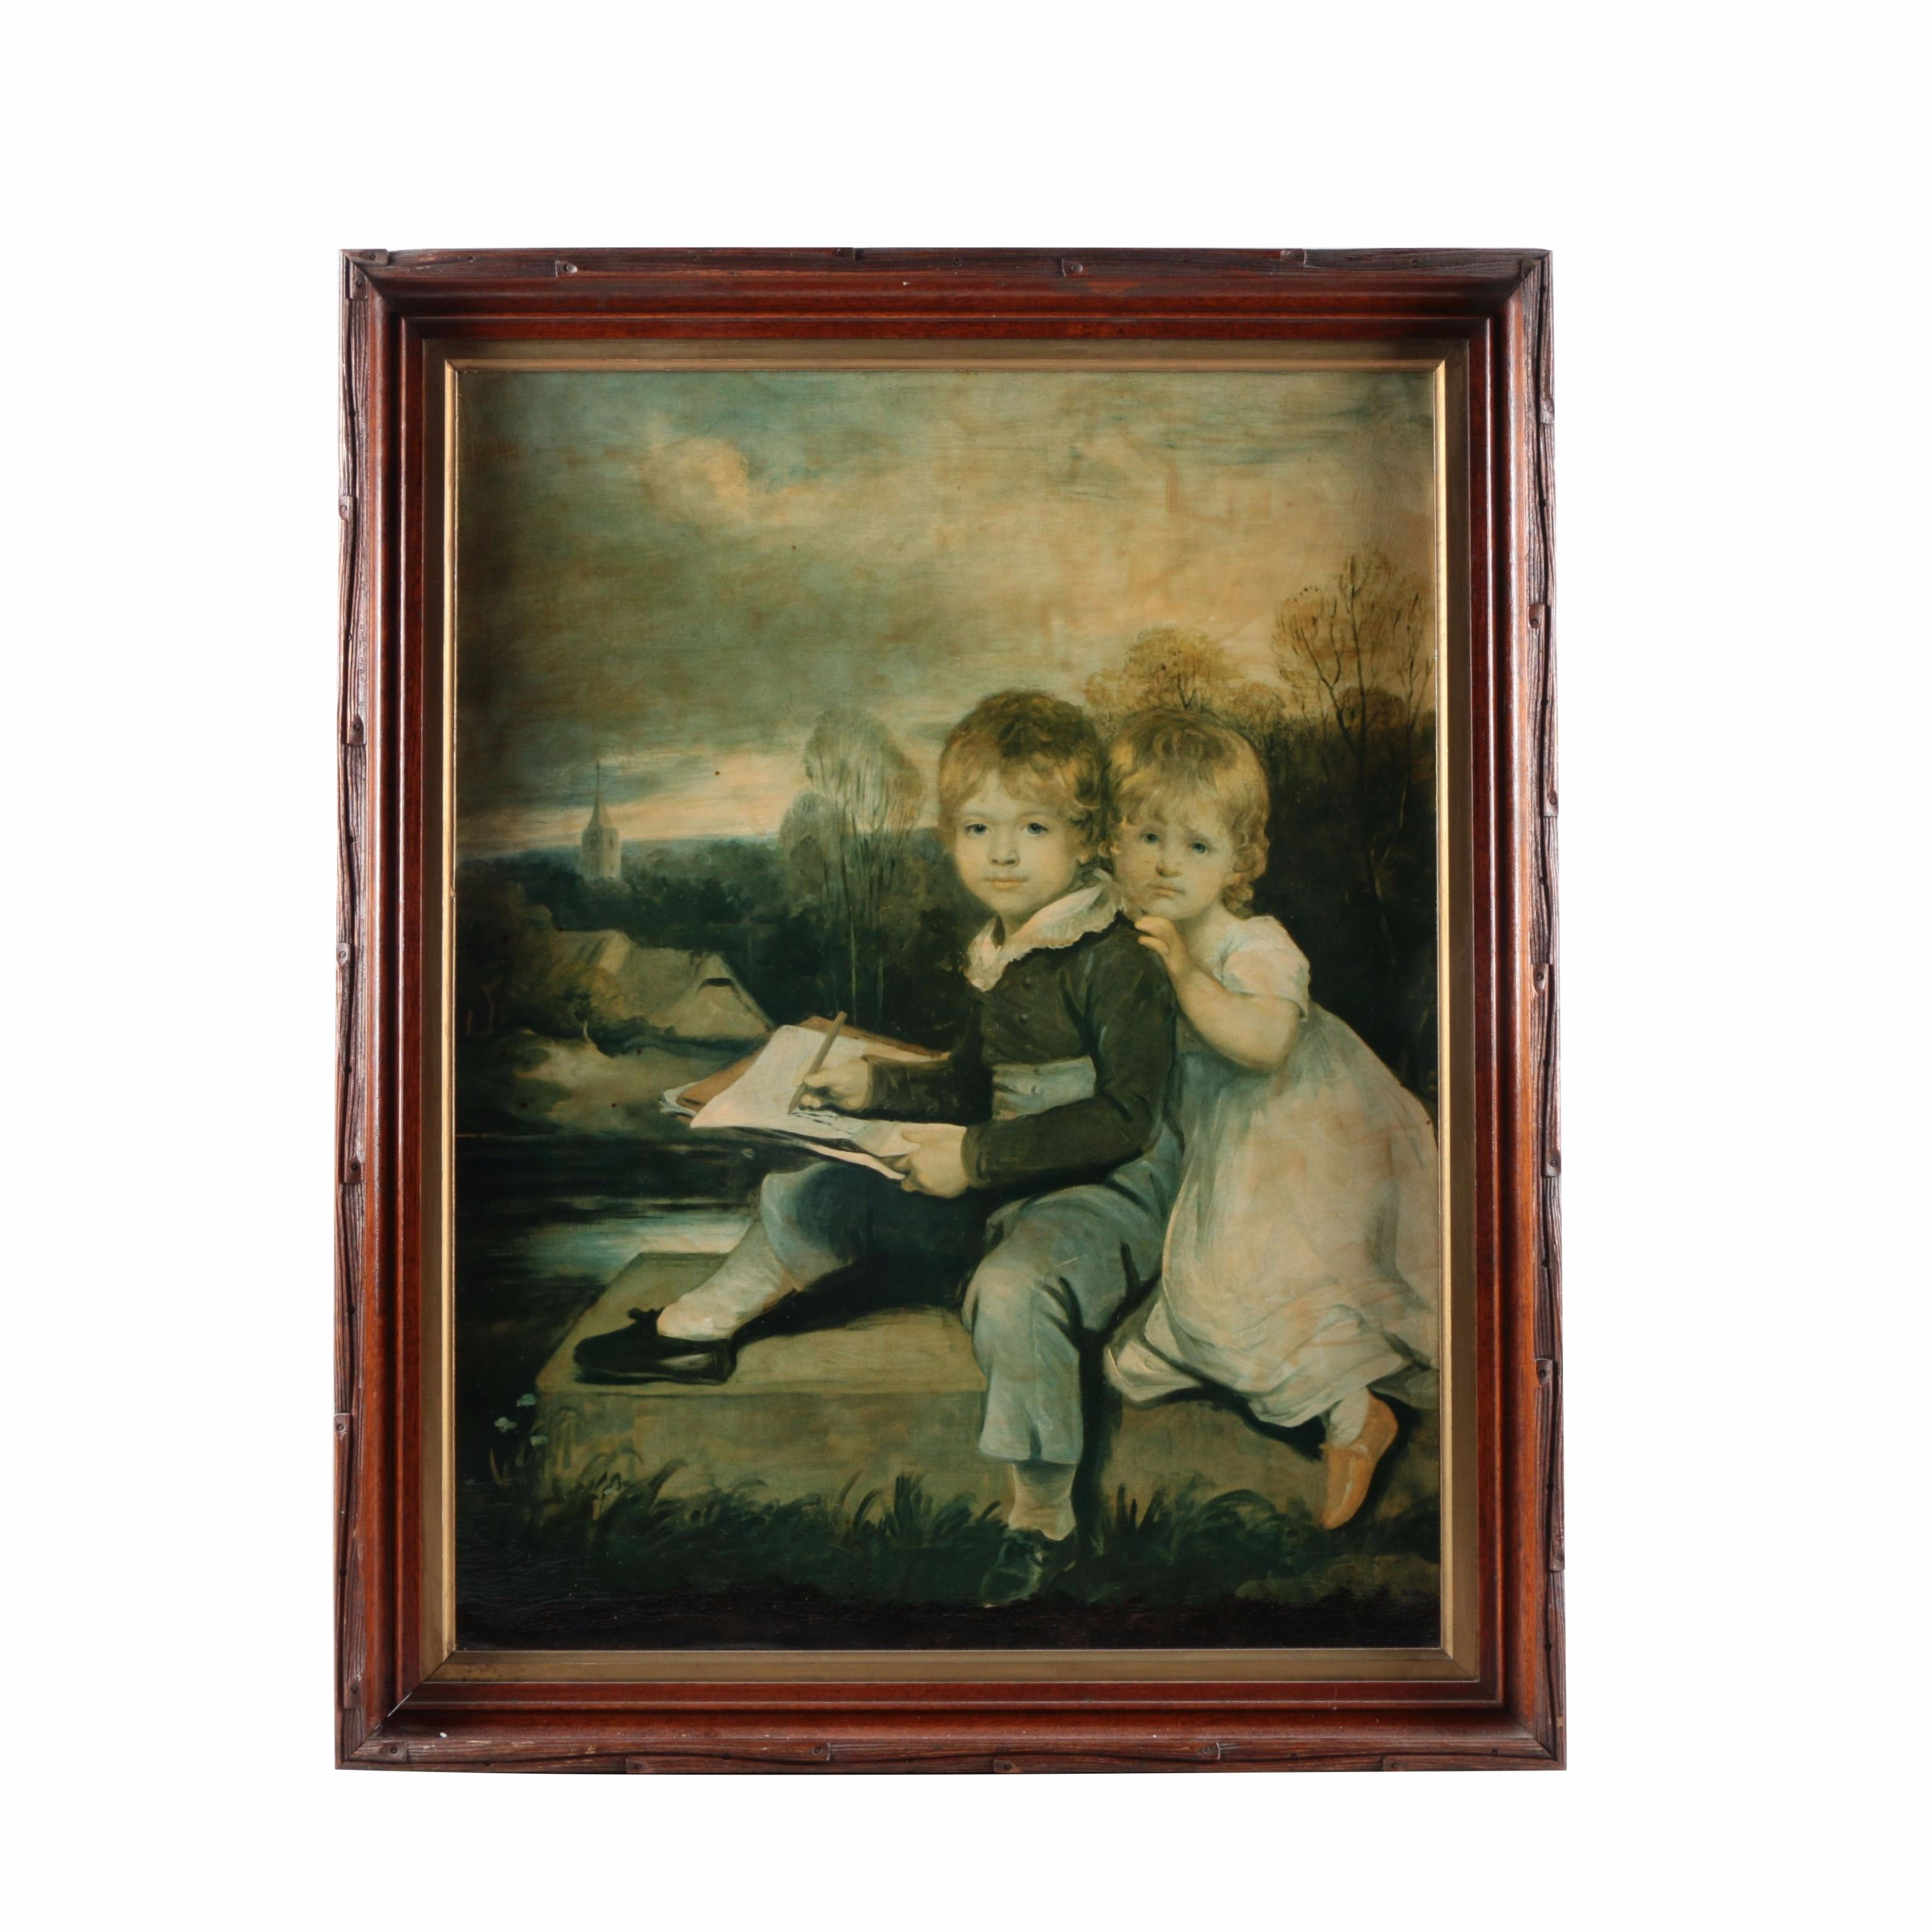 "Oil Painting on Board After John Hoppner's ""The Bowden Children"""